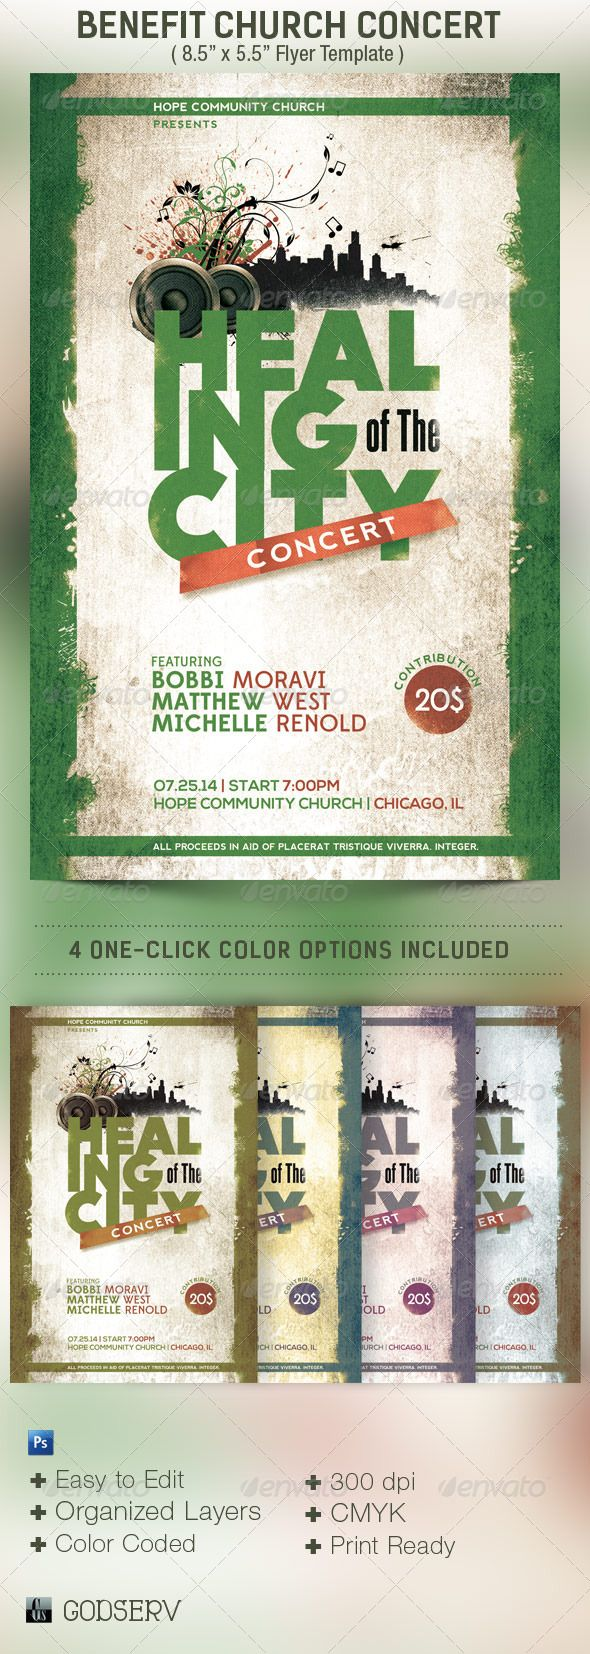 benefit concert church flyer template church camps and musicals benefit concert church flyer template is geared towards usage for charity concerts general fundraisers